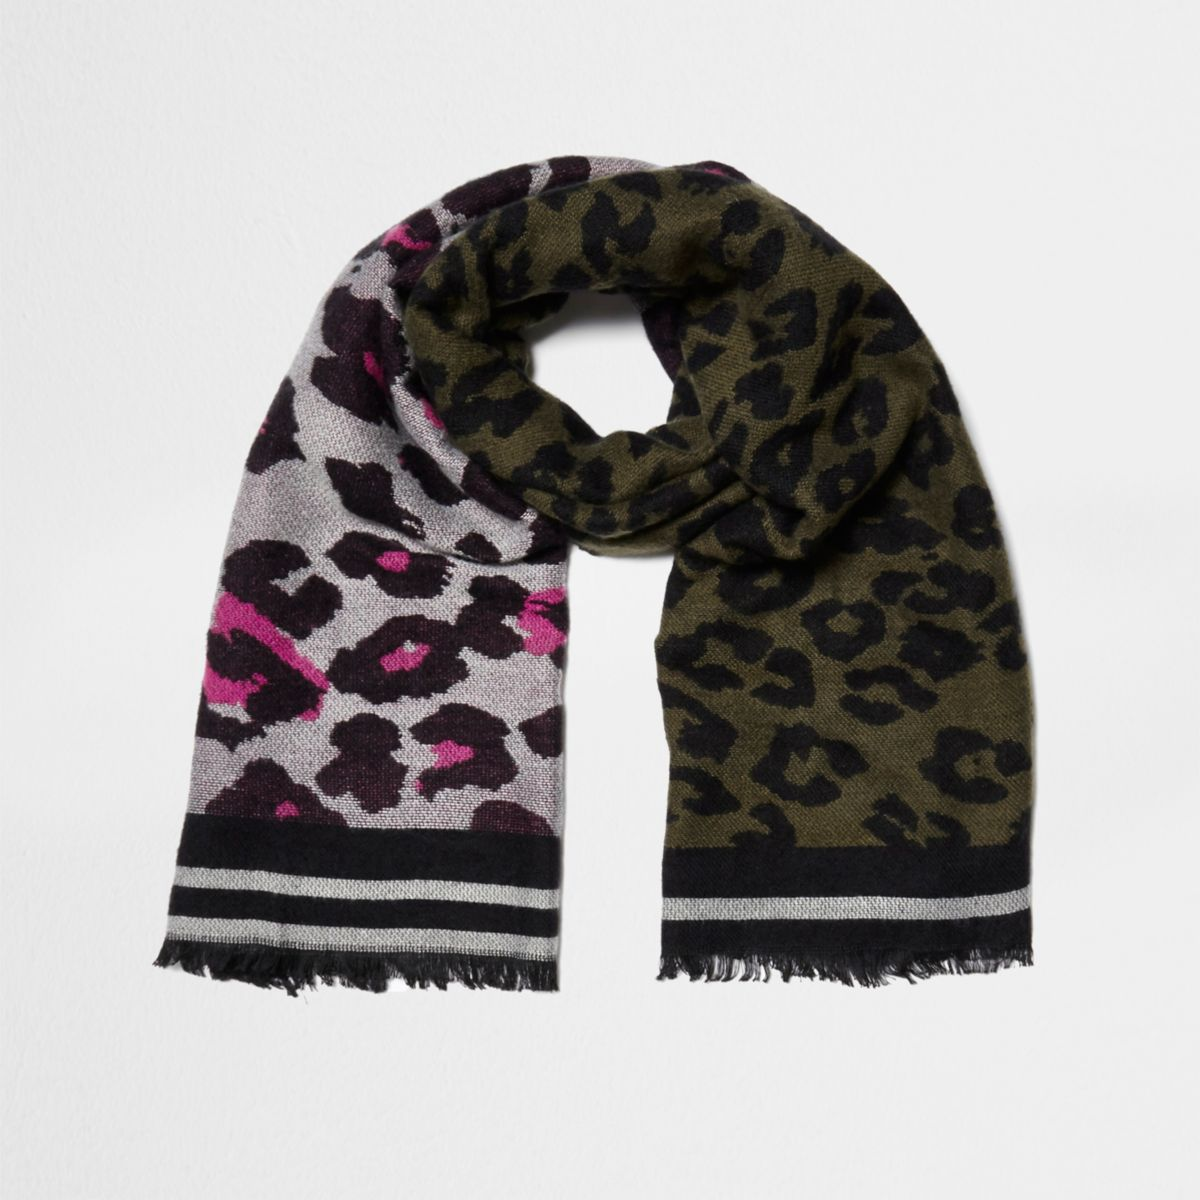 Khaki and pink leopard scarf